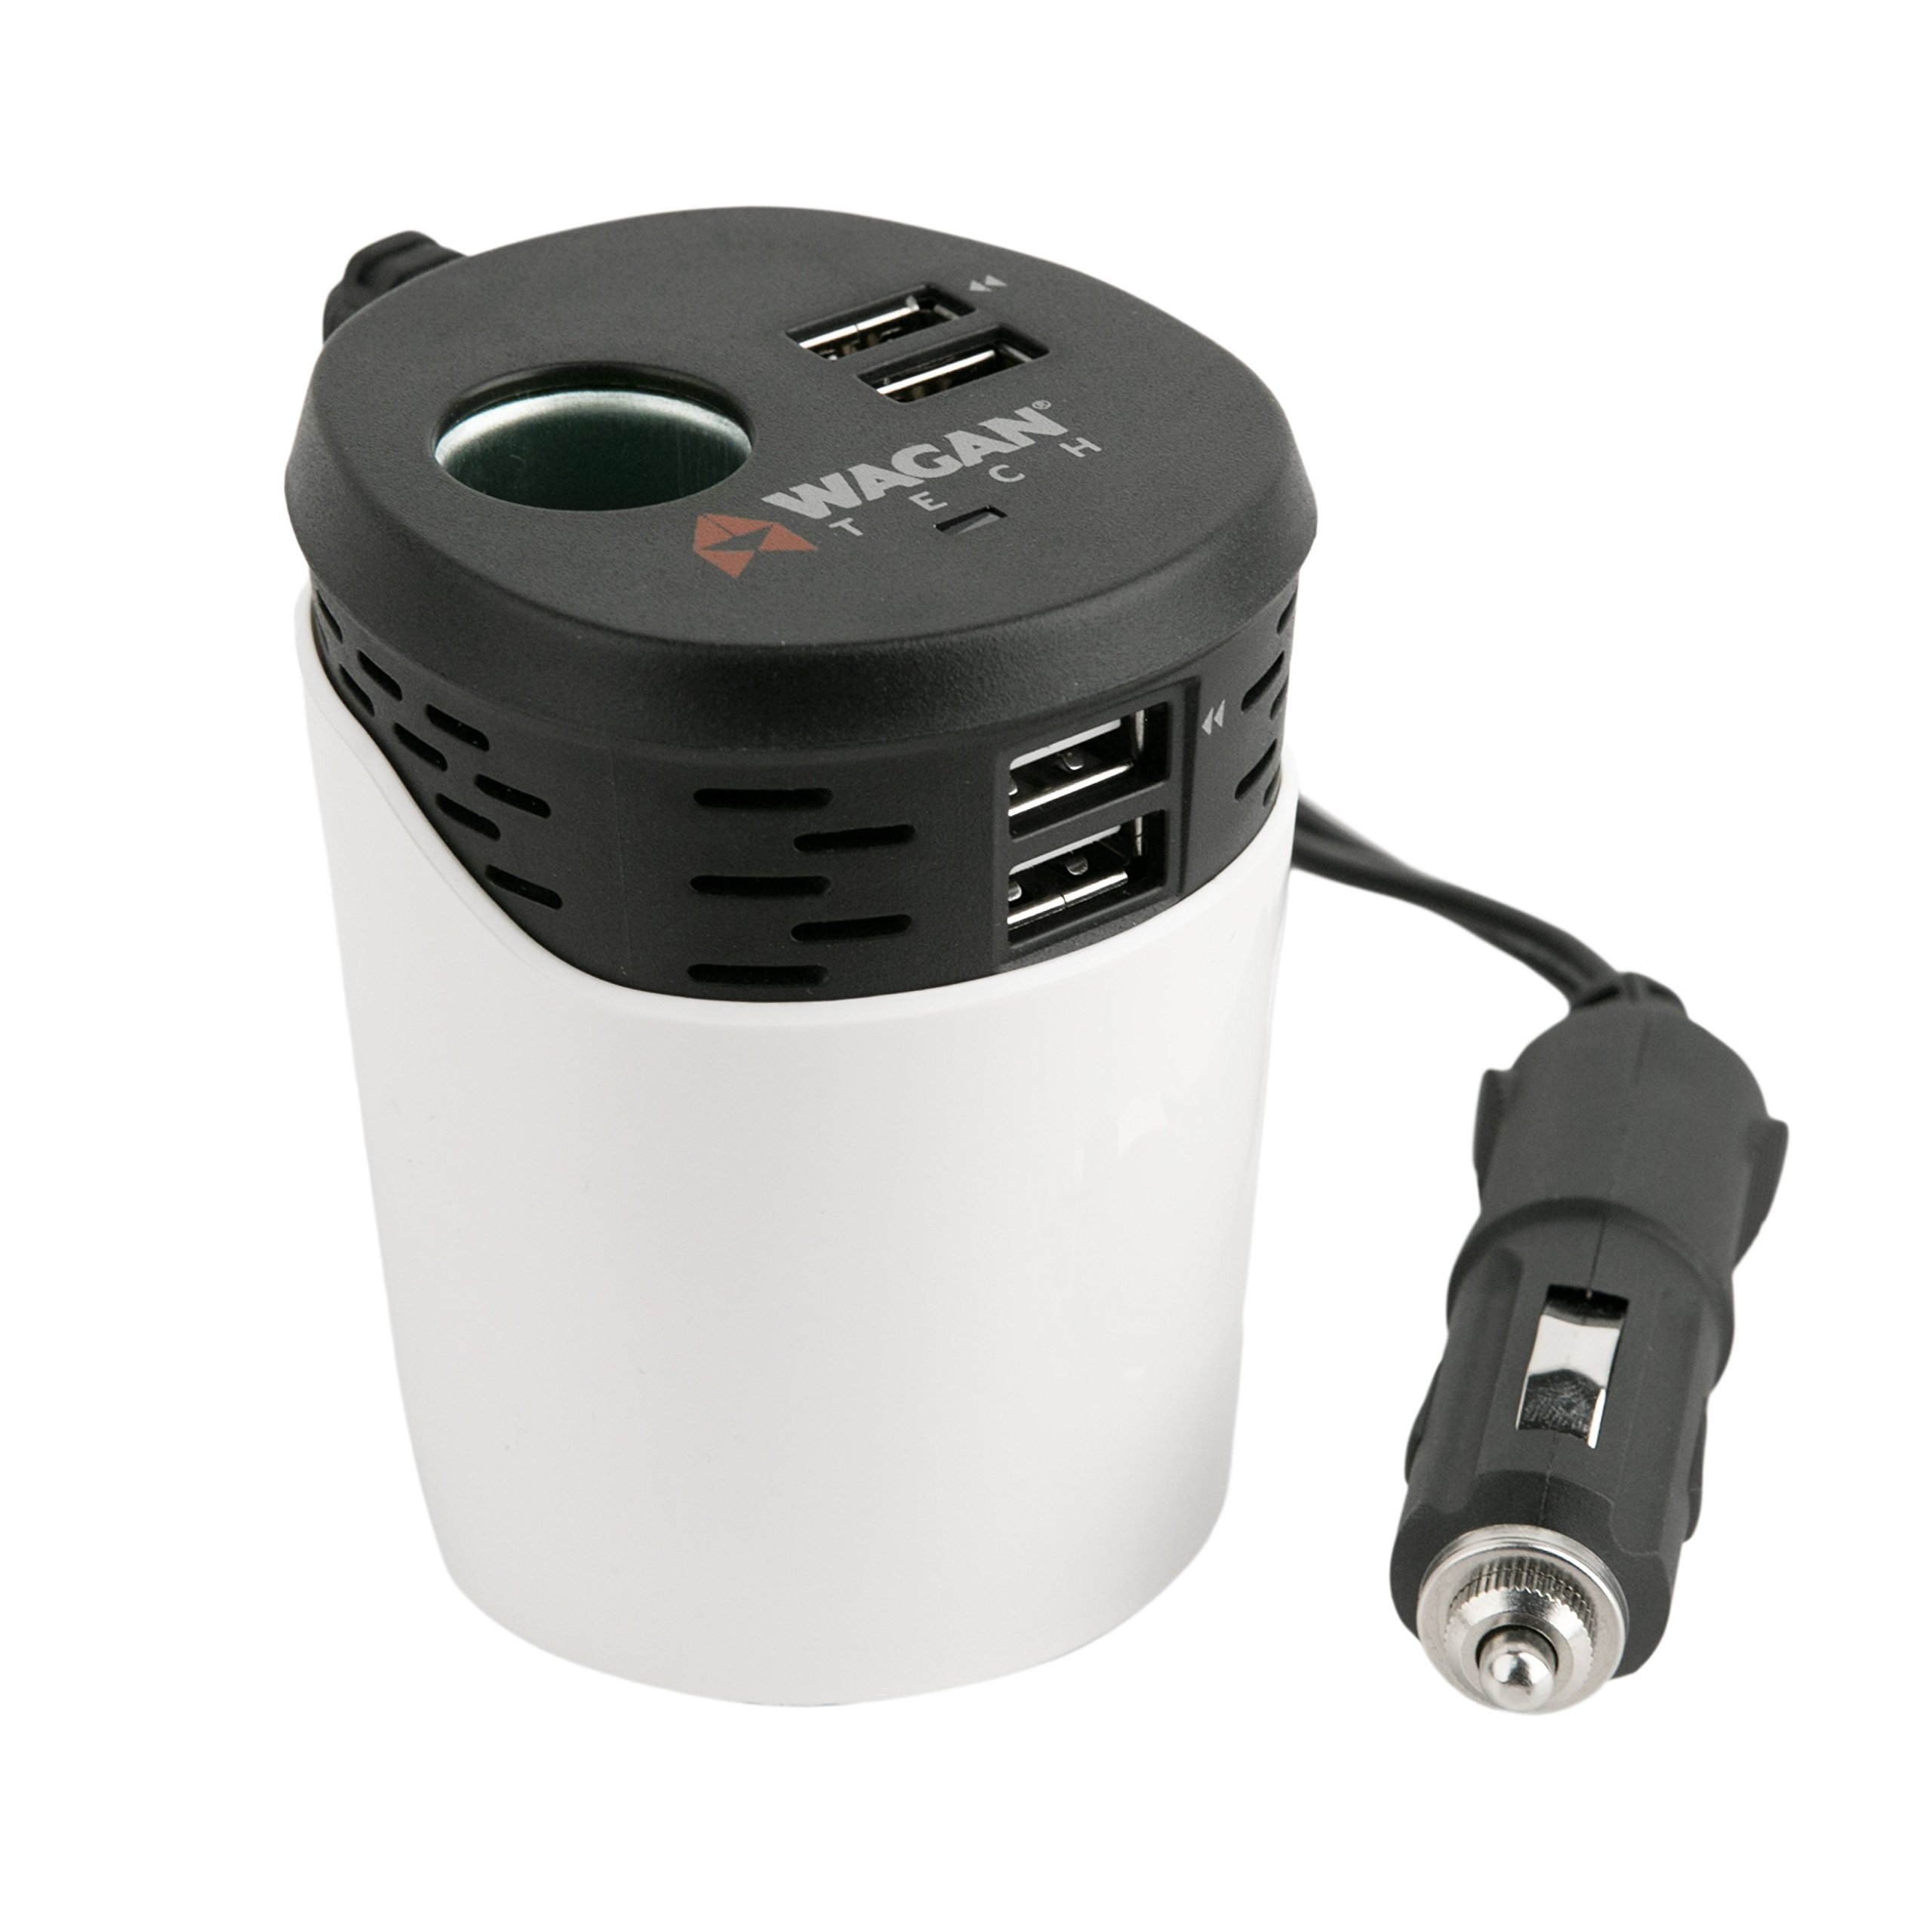 Wagan (EL2886) Travel Charge Series USB 6.2 Amp Quad Power Cup by Wagan